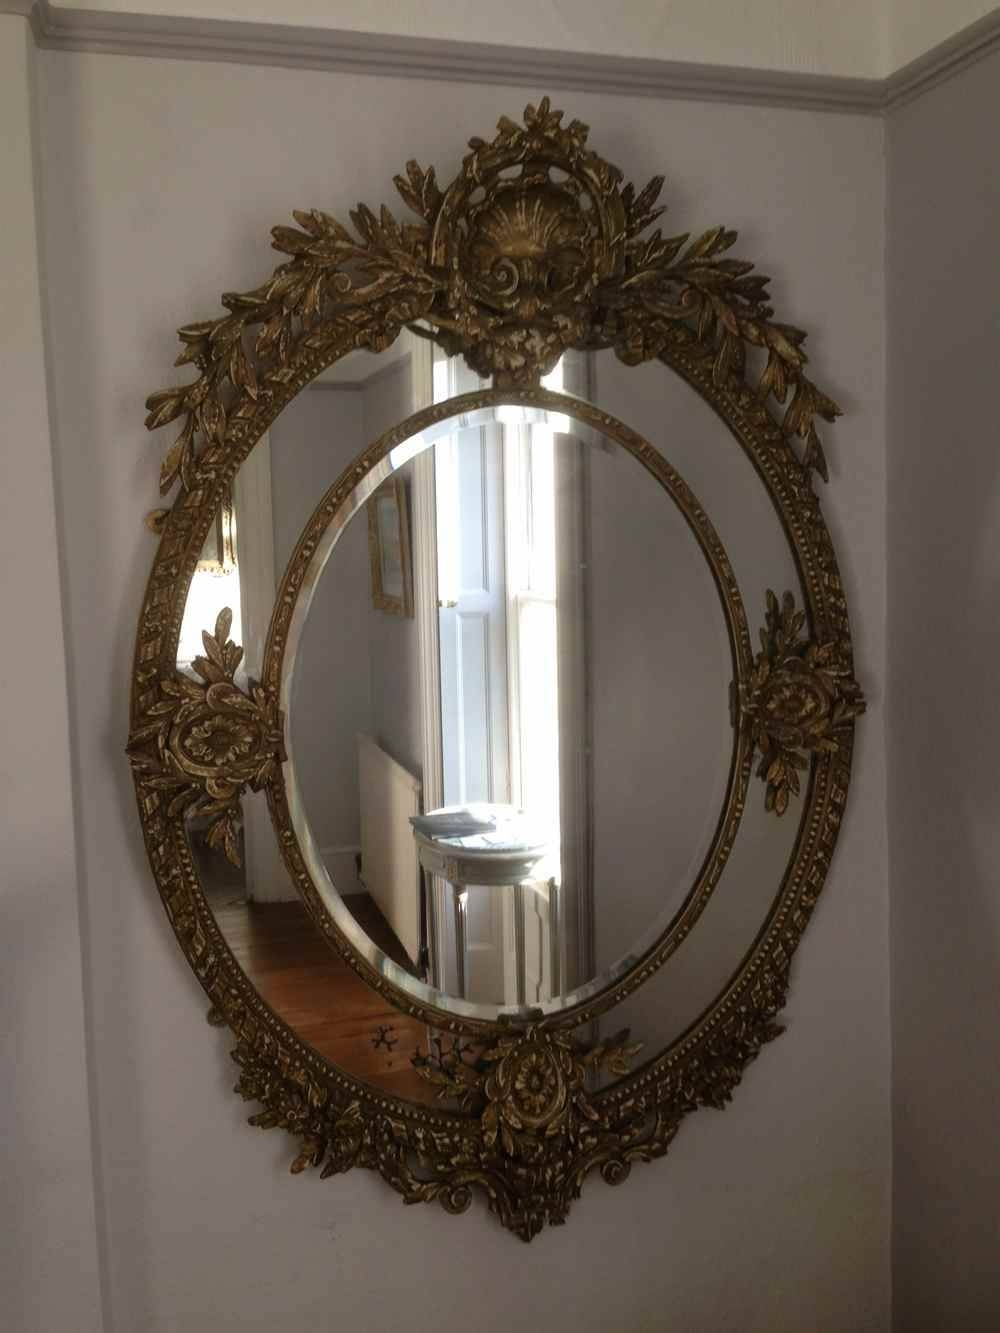 Large Antique Wall Mirror Ornate Frame Antique Ornate Wall Mirrors inside Large Oval Mirrors (Image 10 of 25)